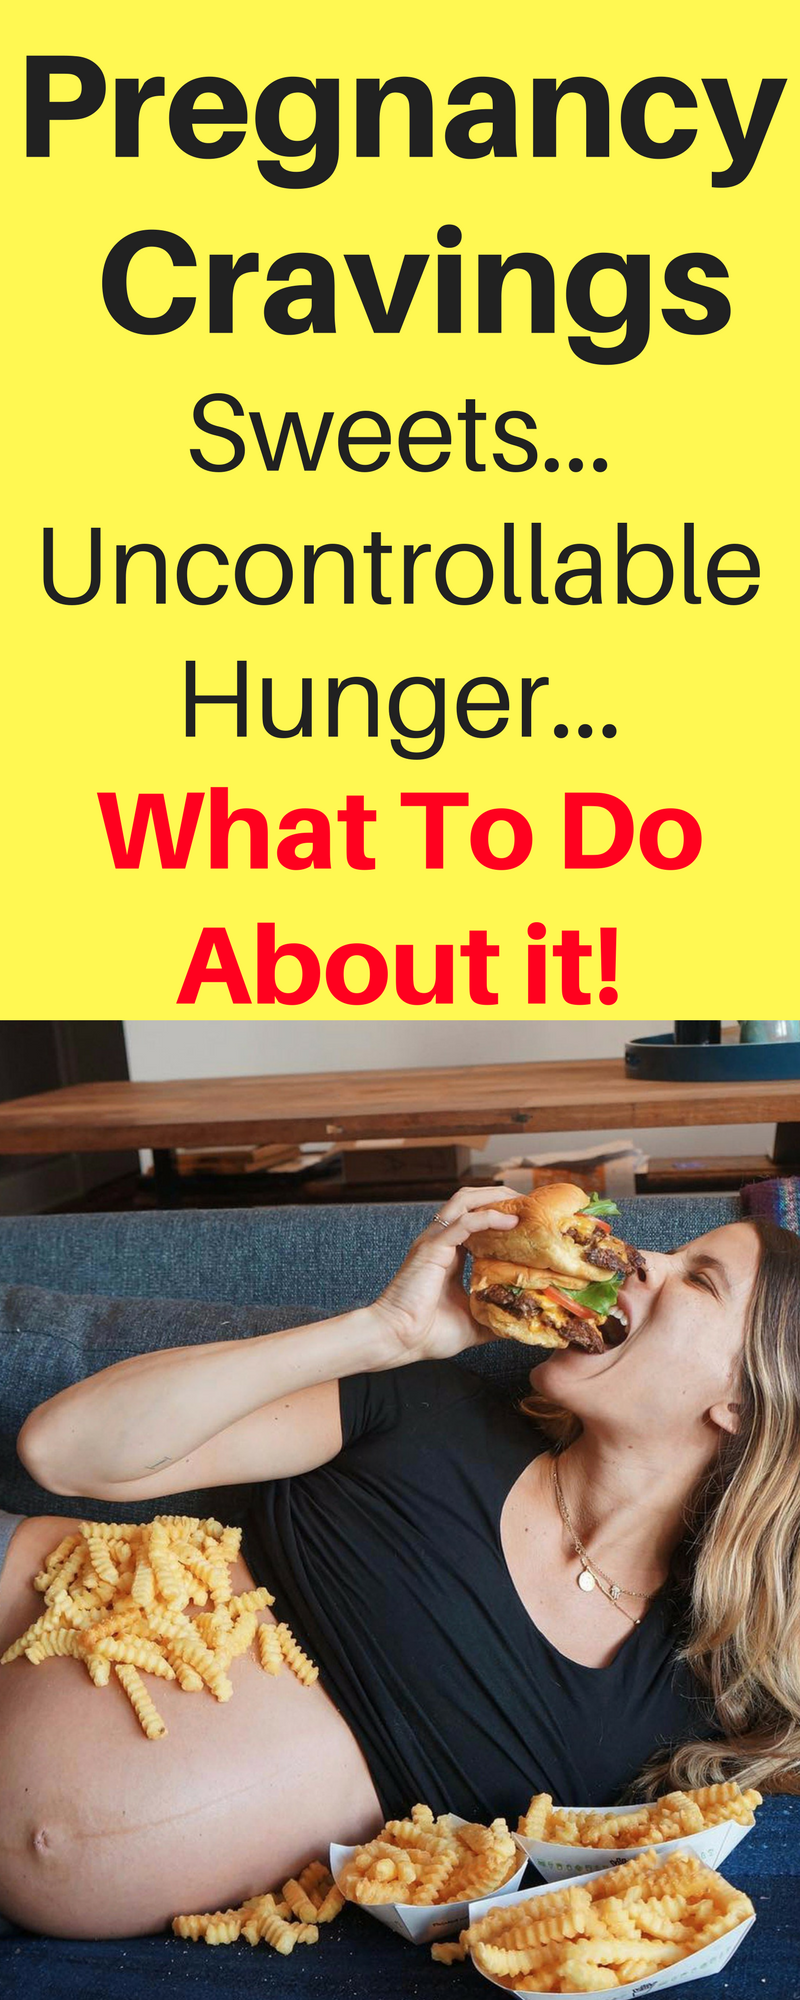 Pregnancy Cravings and hunger